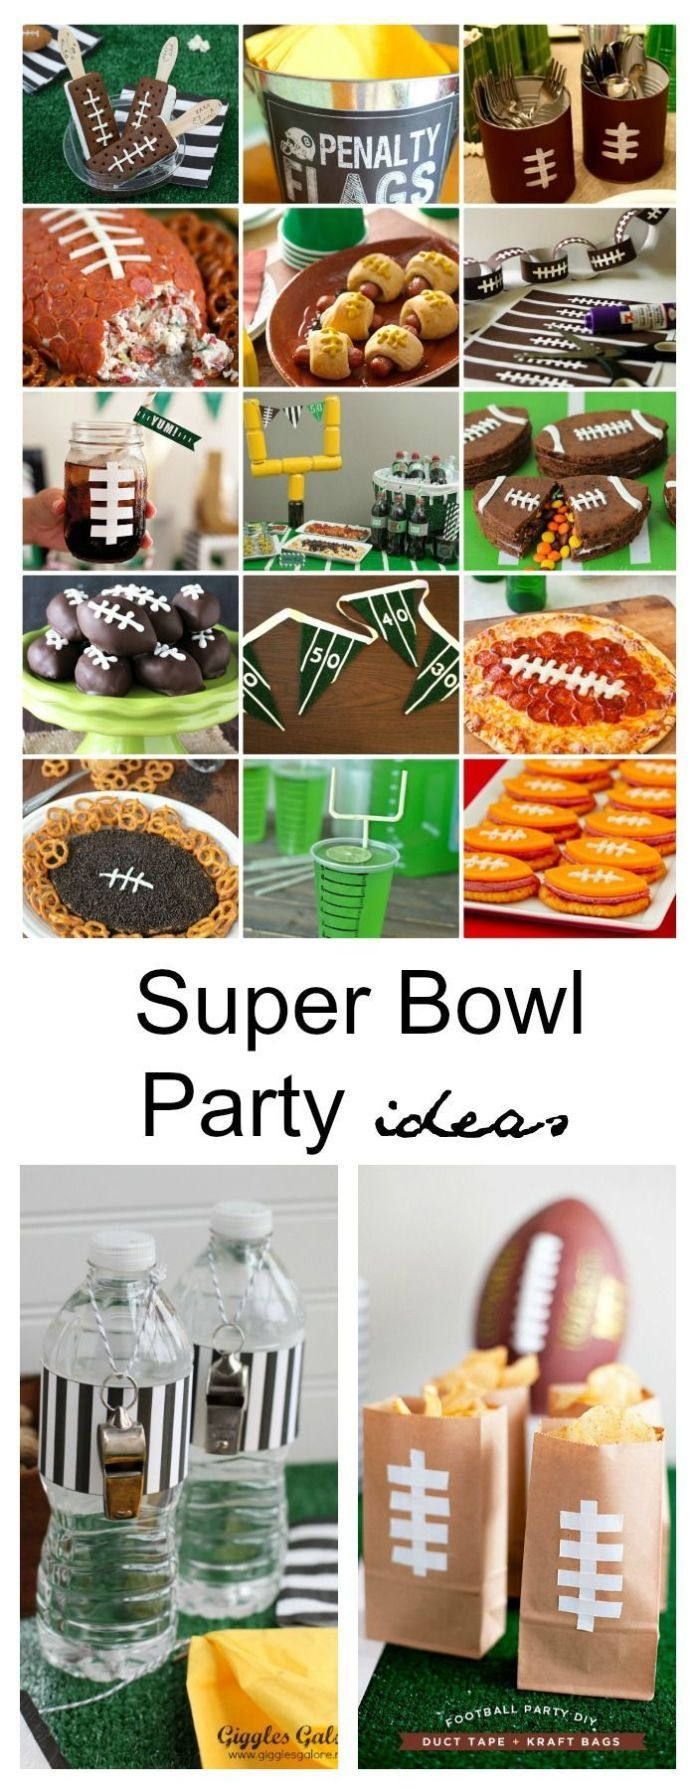 Best 20+ When's the super bowl ideas on Pinterest | Baked wings ...